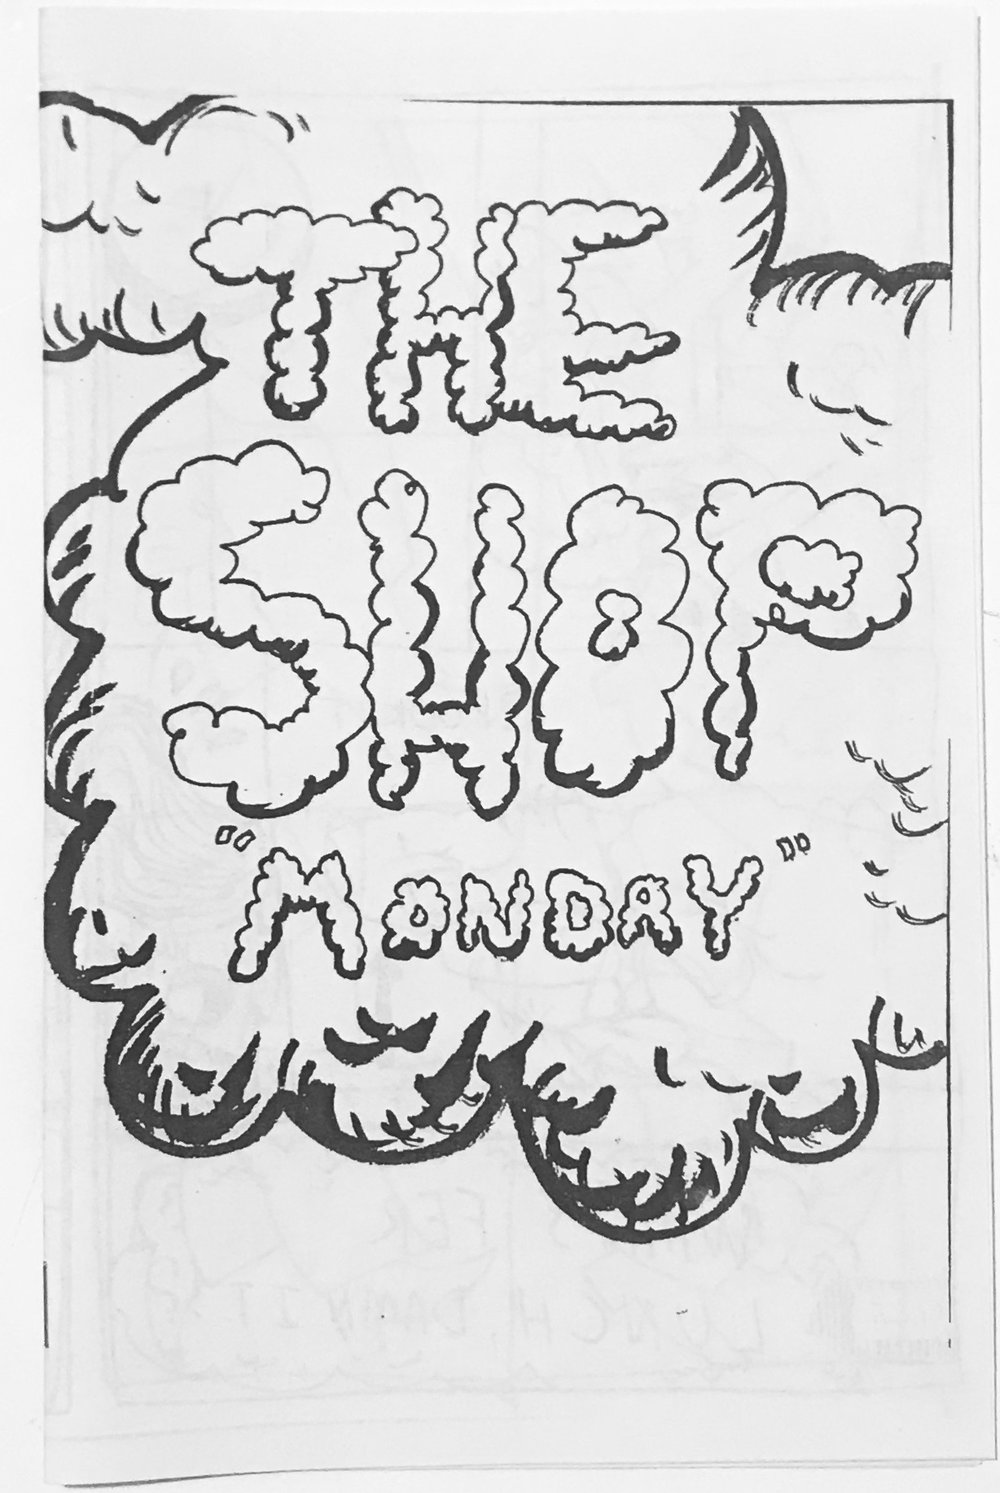 The Shop - Monday